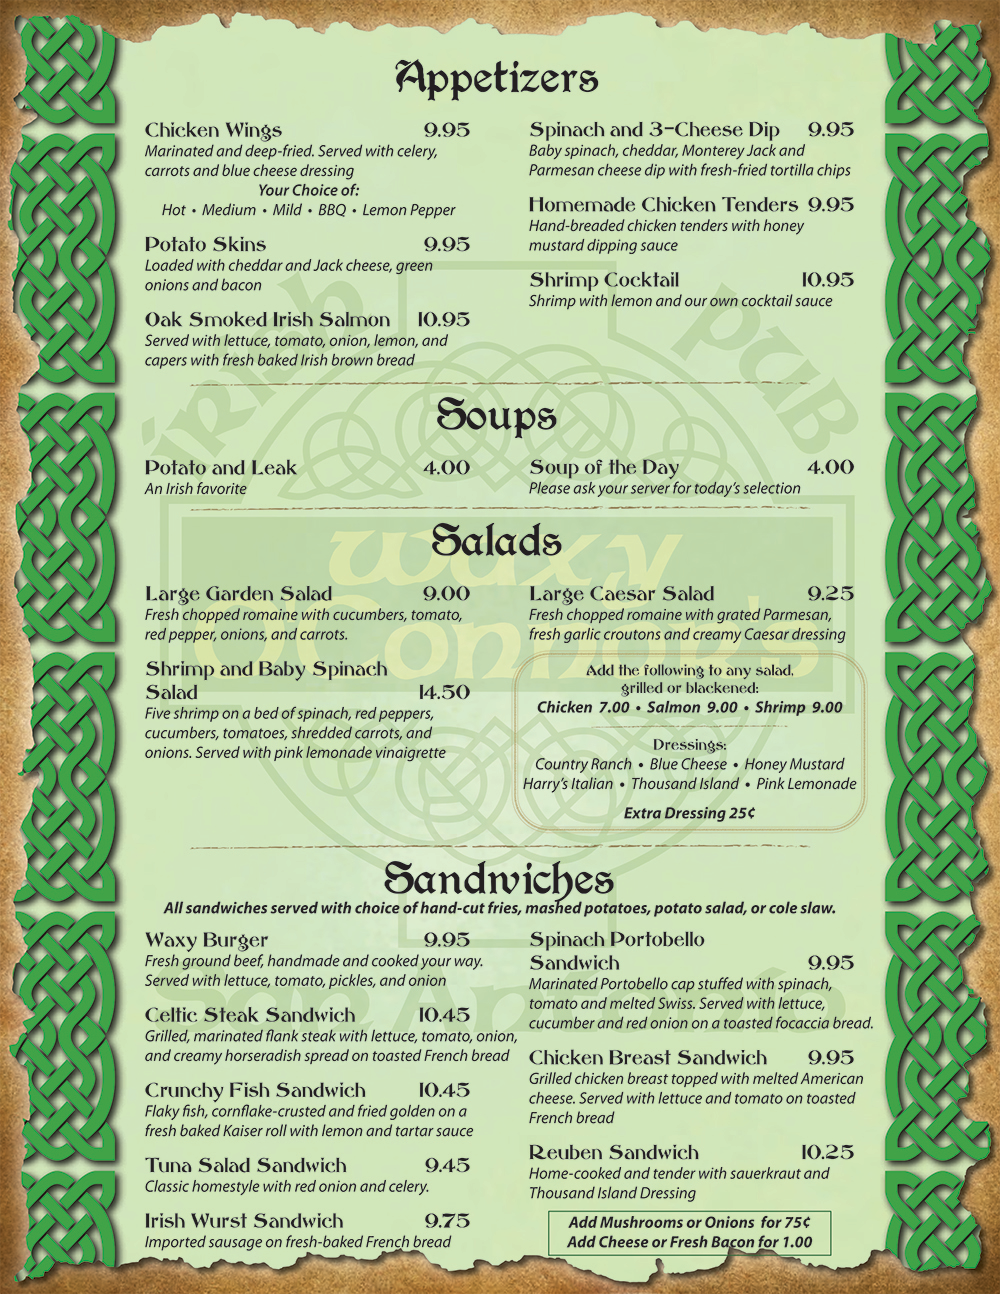 These menu items are made using gluten-free ingredients based on information from our suppliers. However, due to our current kitchen space, only the pizzas listed on our separate Gluten-Free pizza menu can be prepared using GIG's certified procedures.